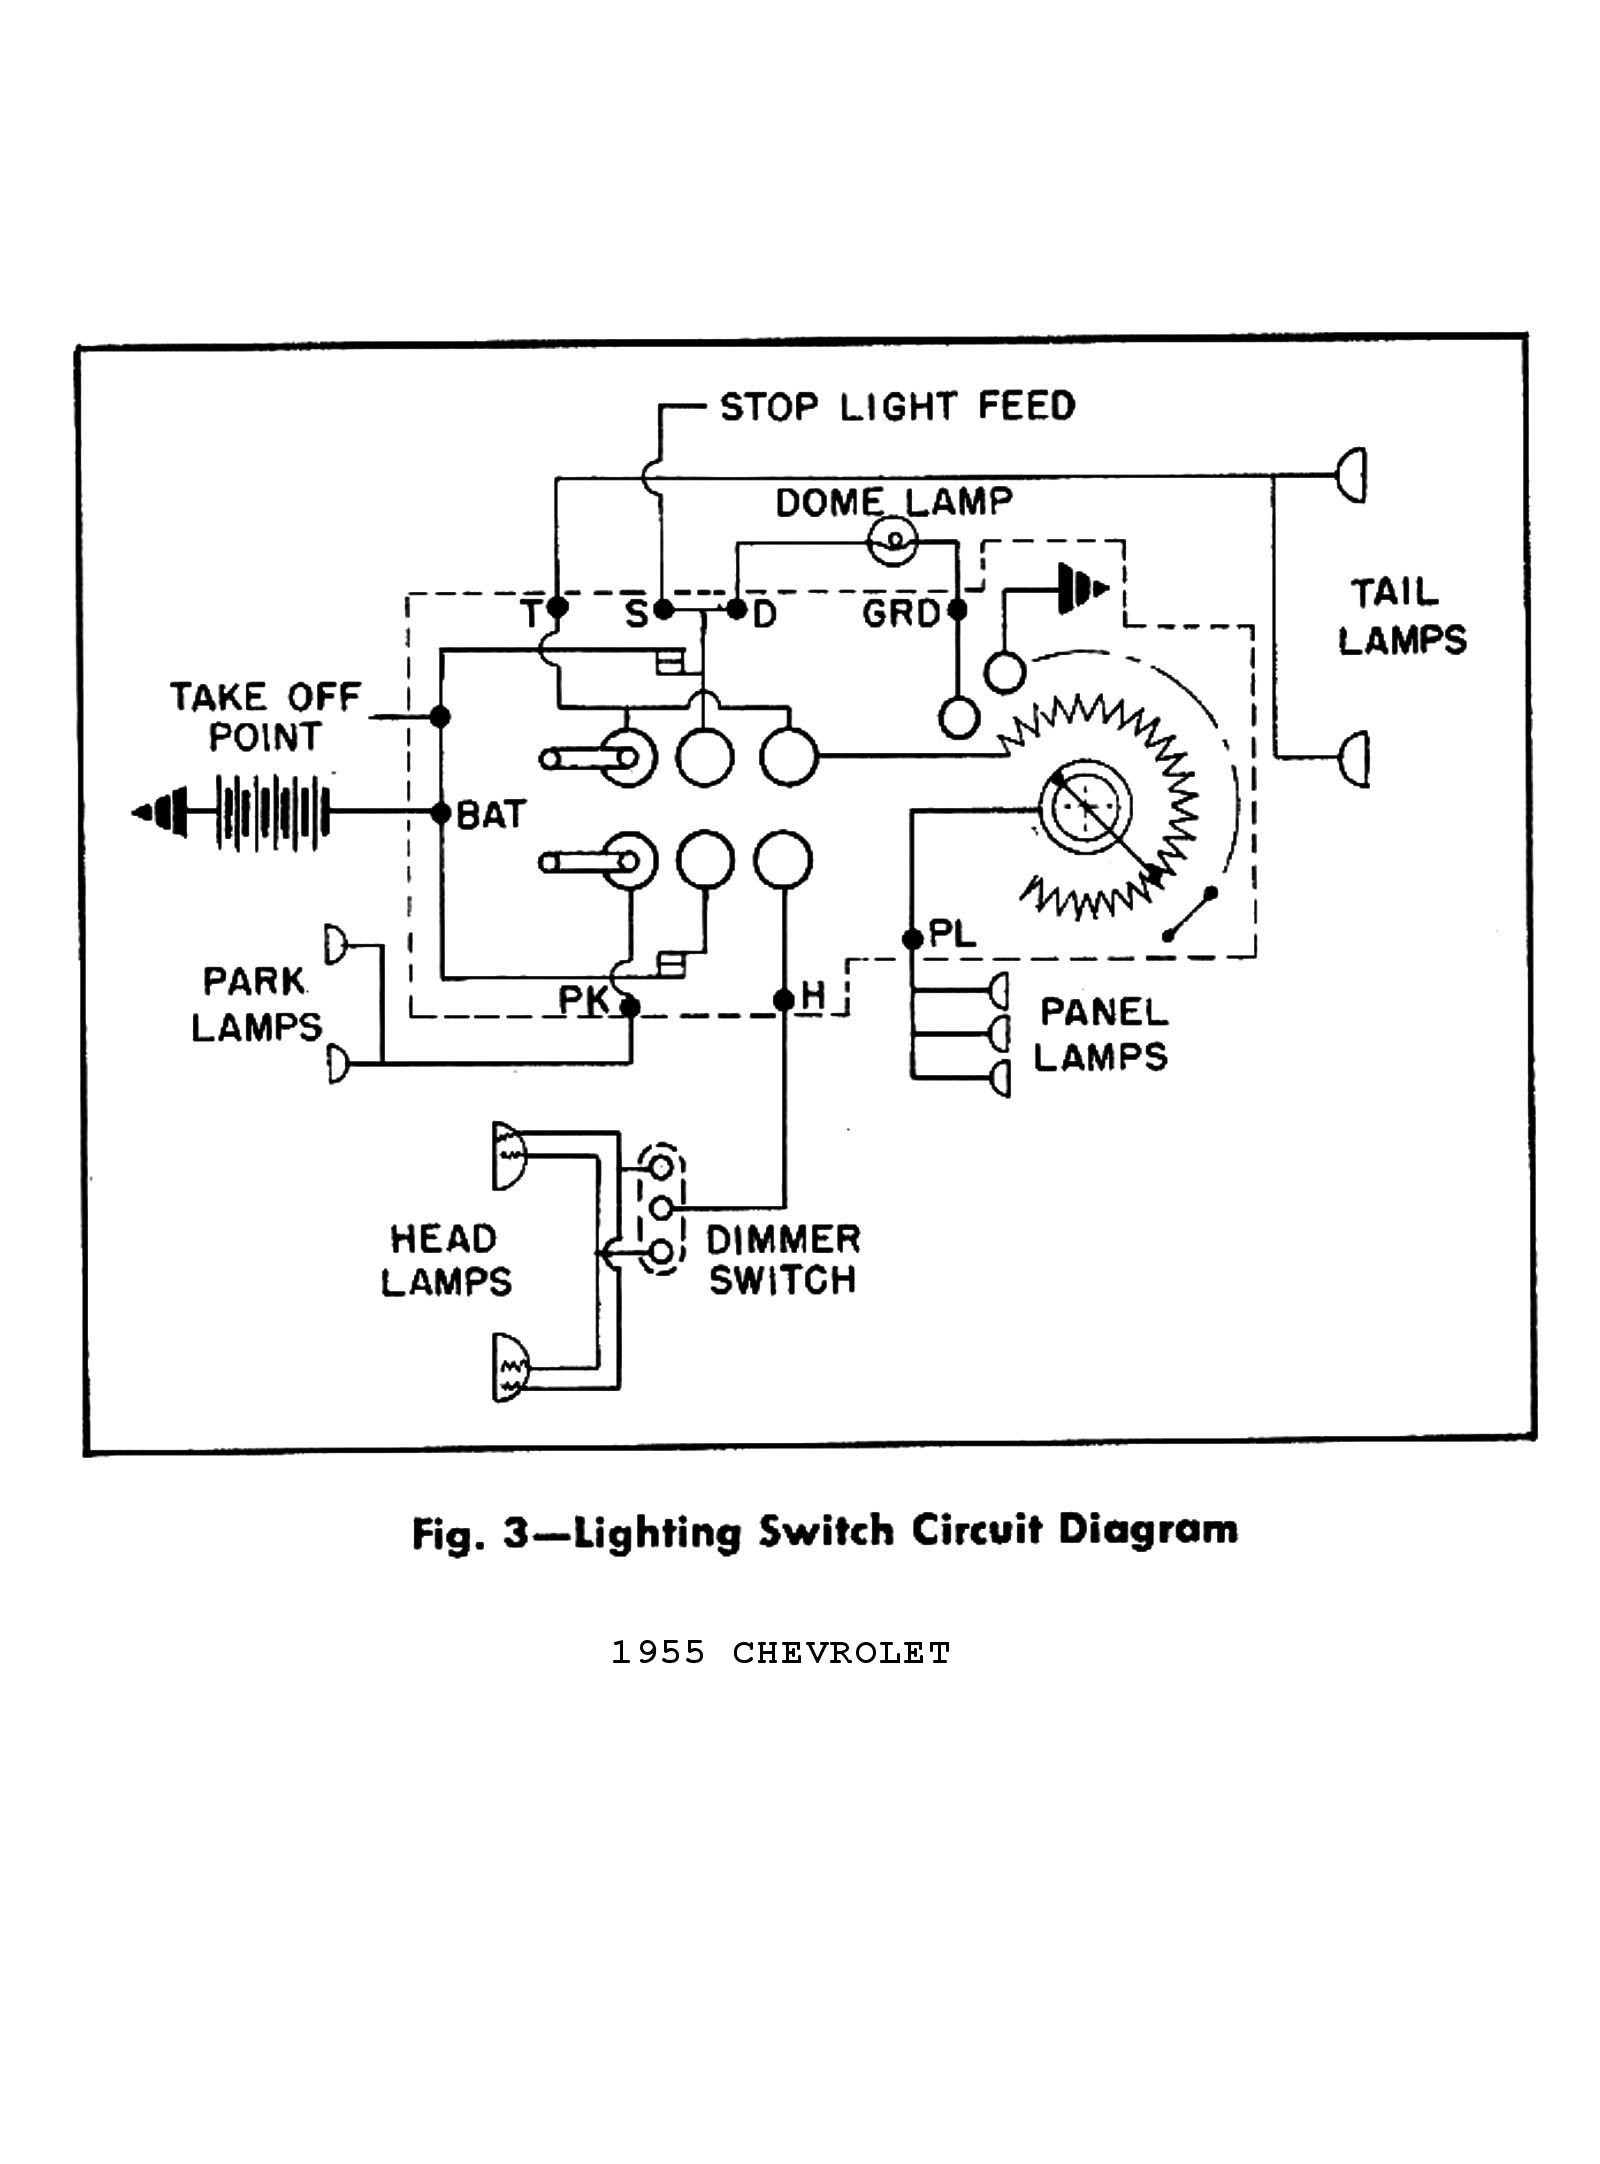 3 Position Pull Switch Wiring Diagram Electrical Diagrams Push Universal Headlight Illustration Of Crankshaft Sensor